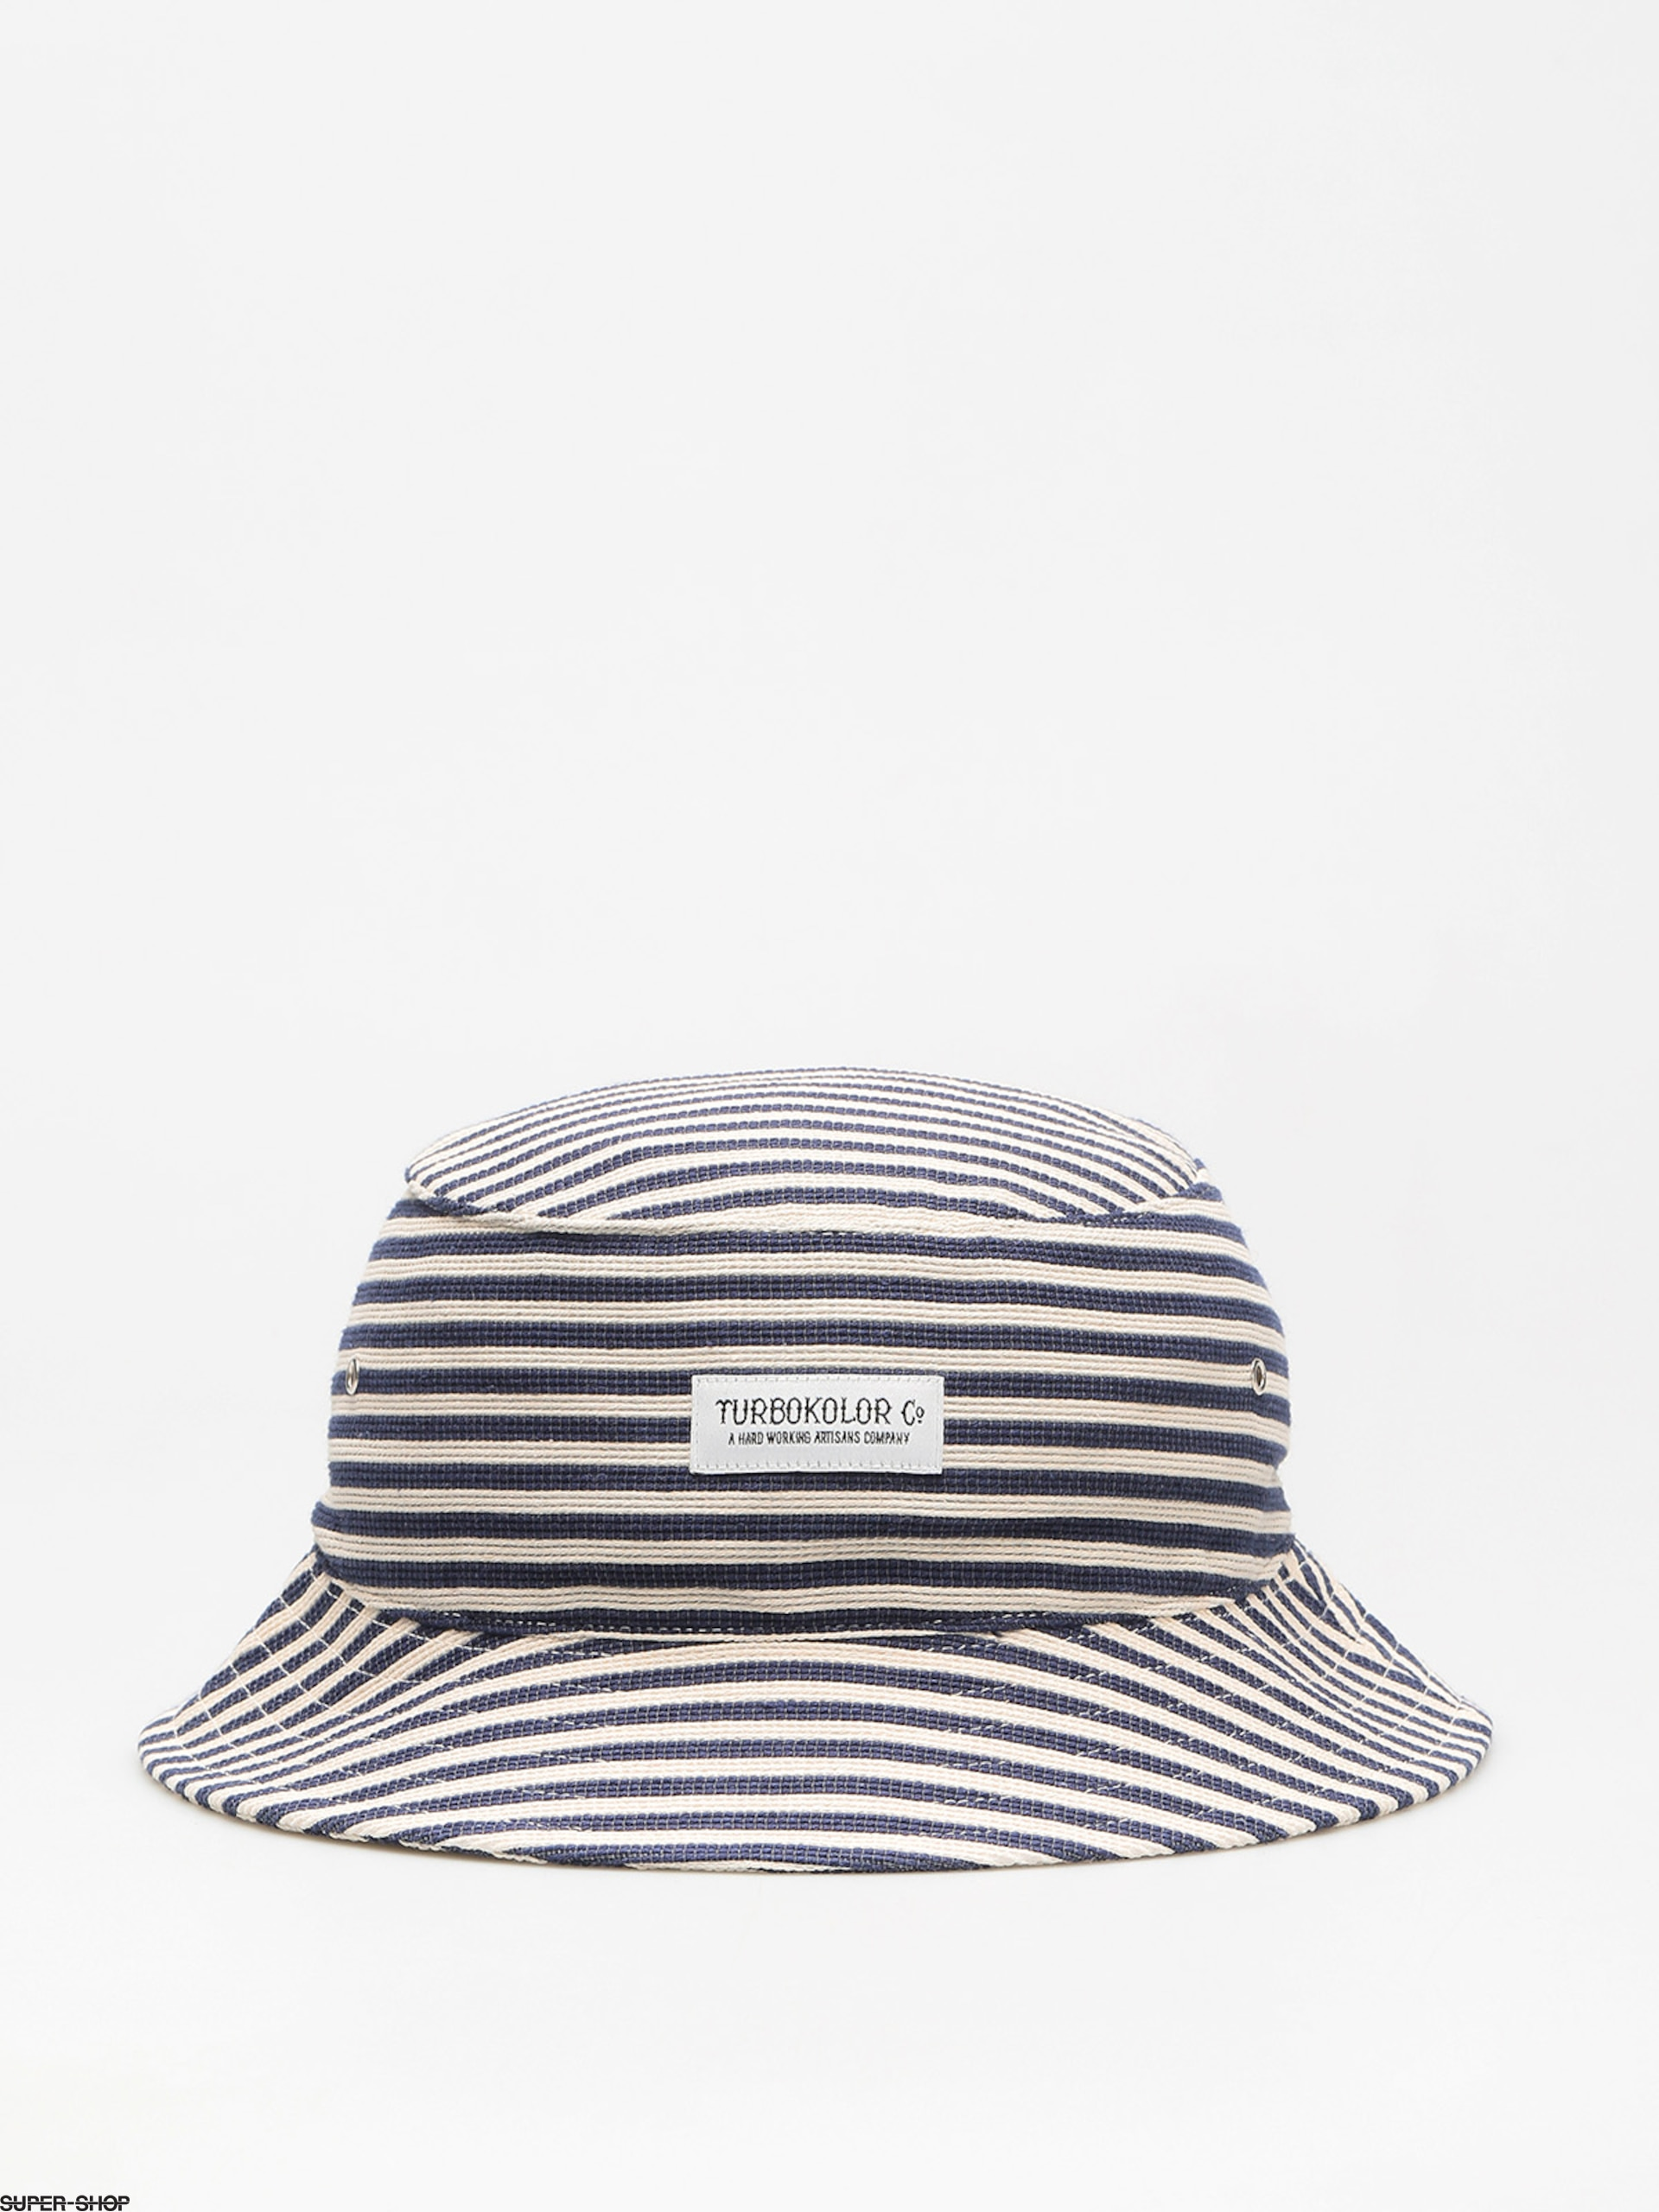 Turbokolor Hat Bucket (stripes)